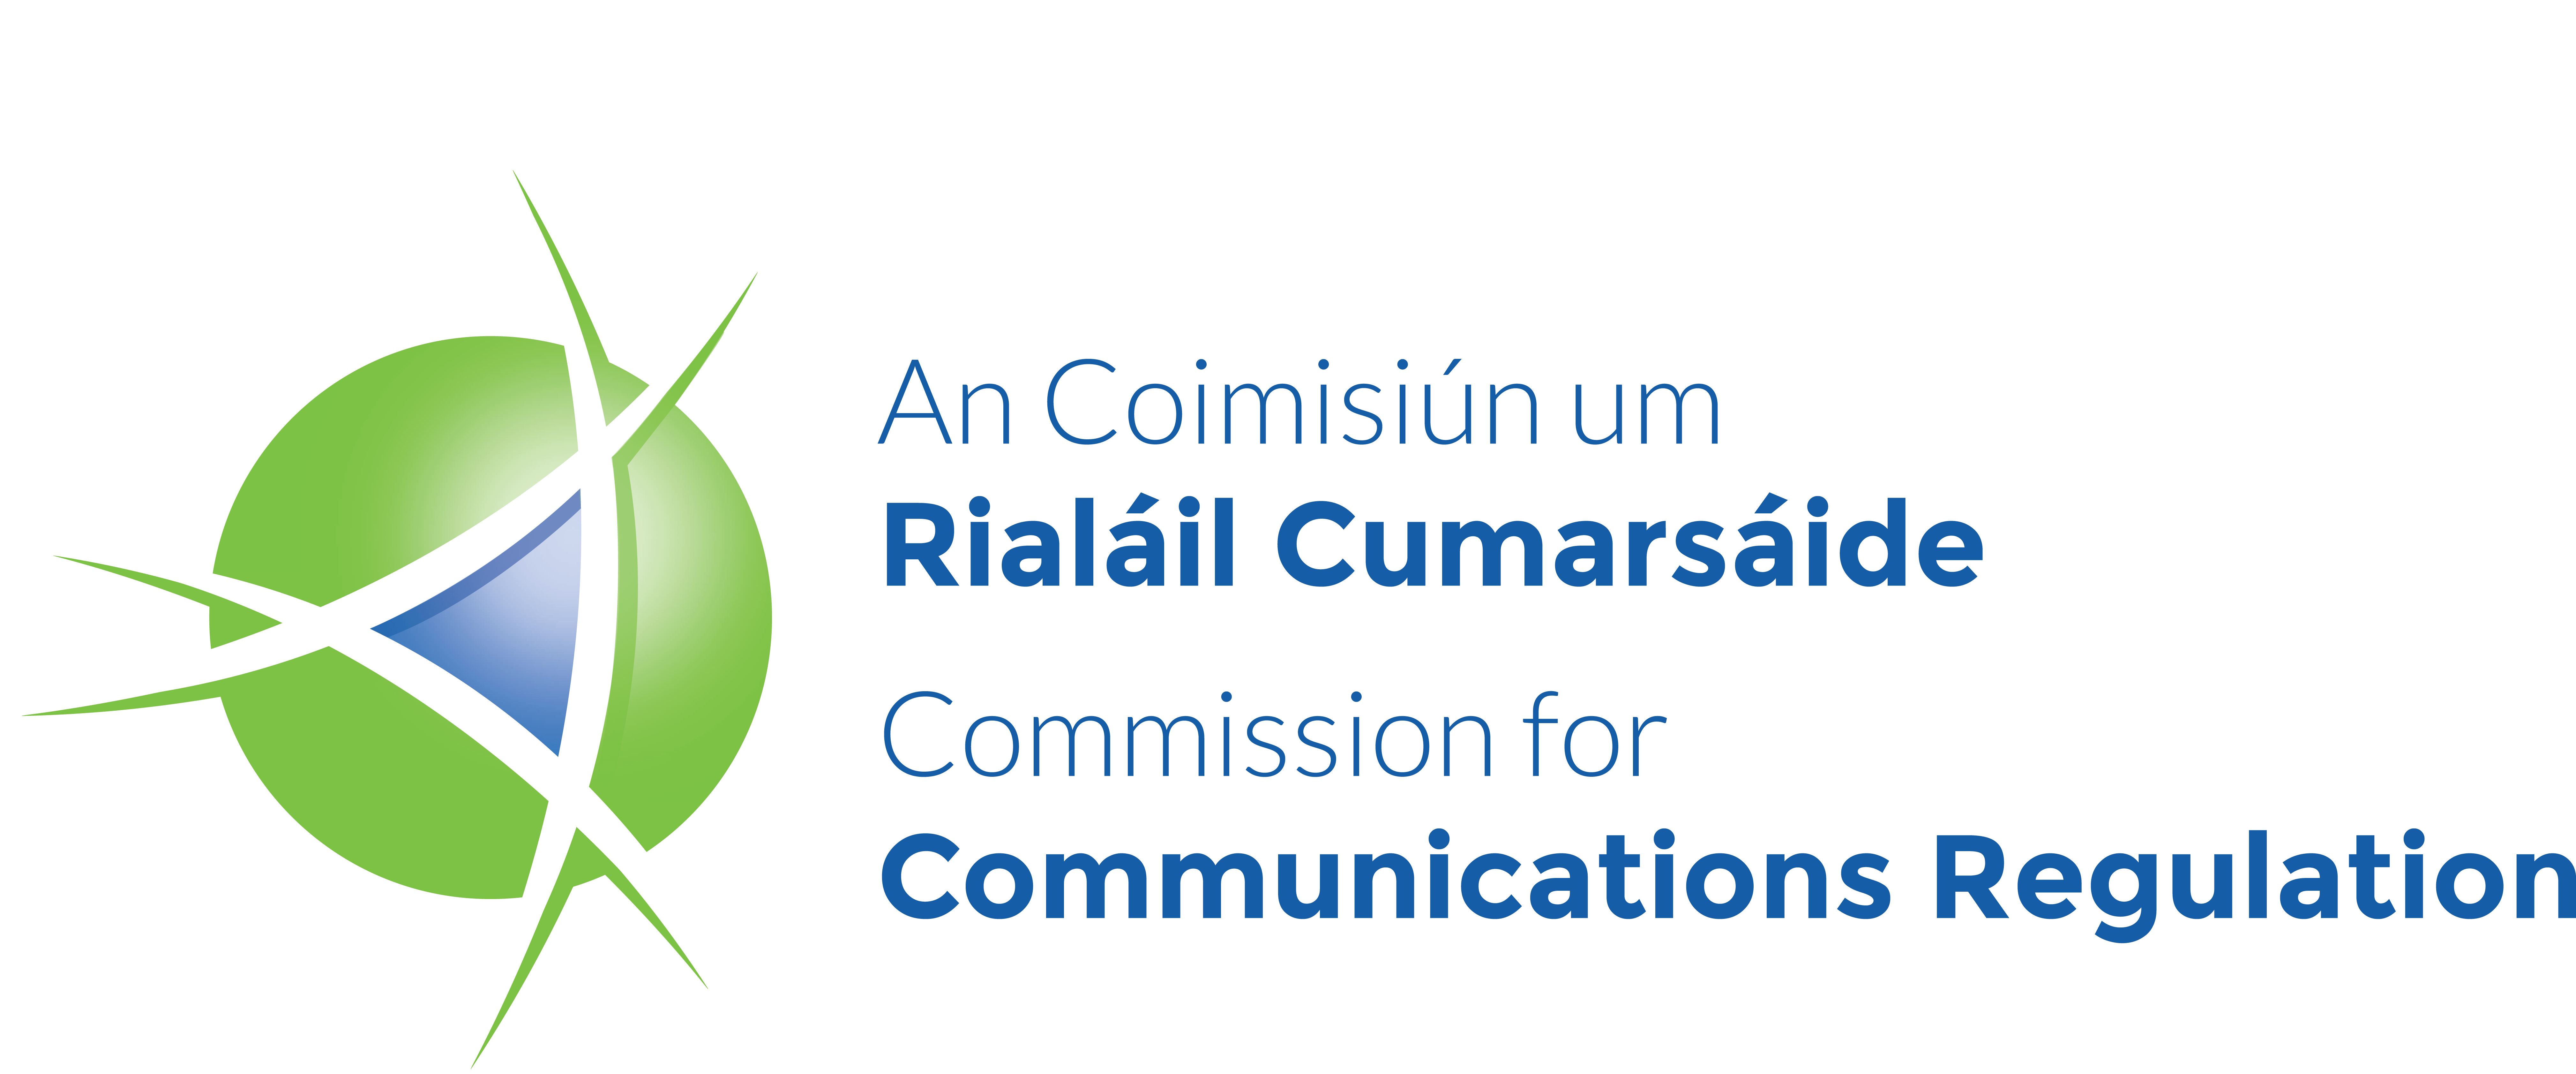 ComReg issues Notifications of Finding of Non-Compliance to Three